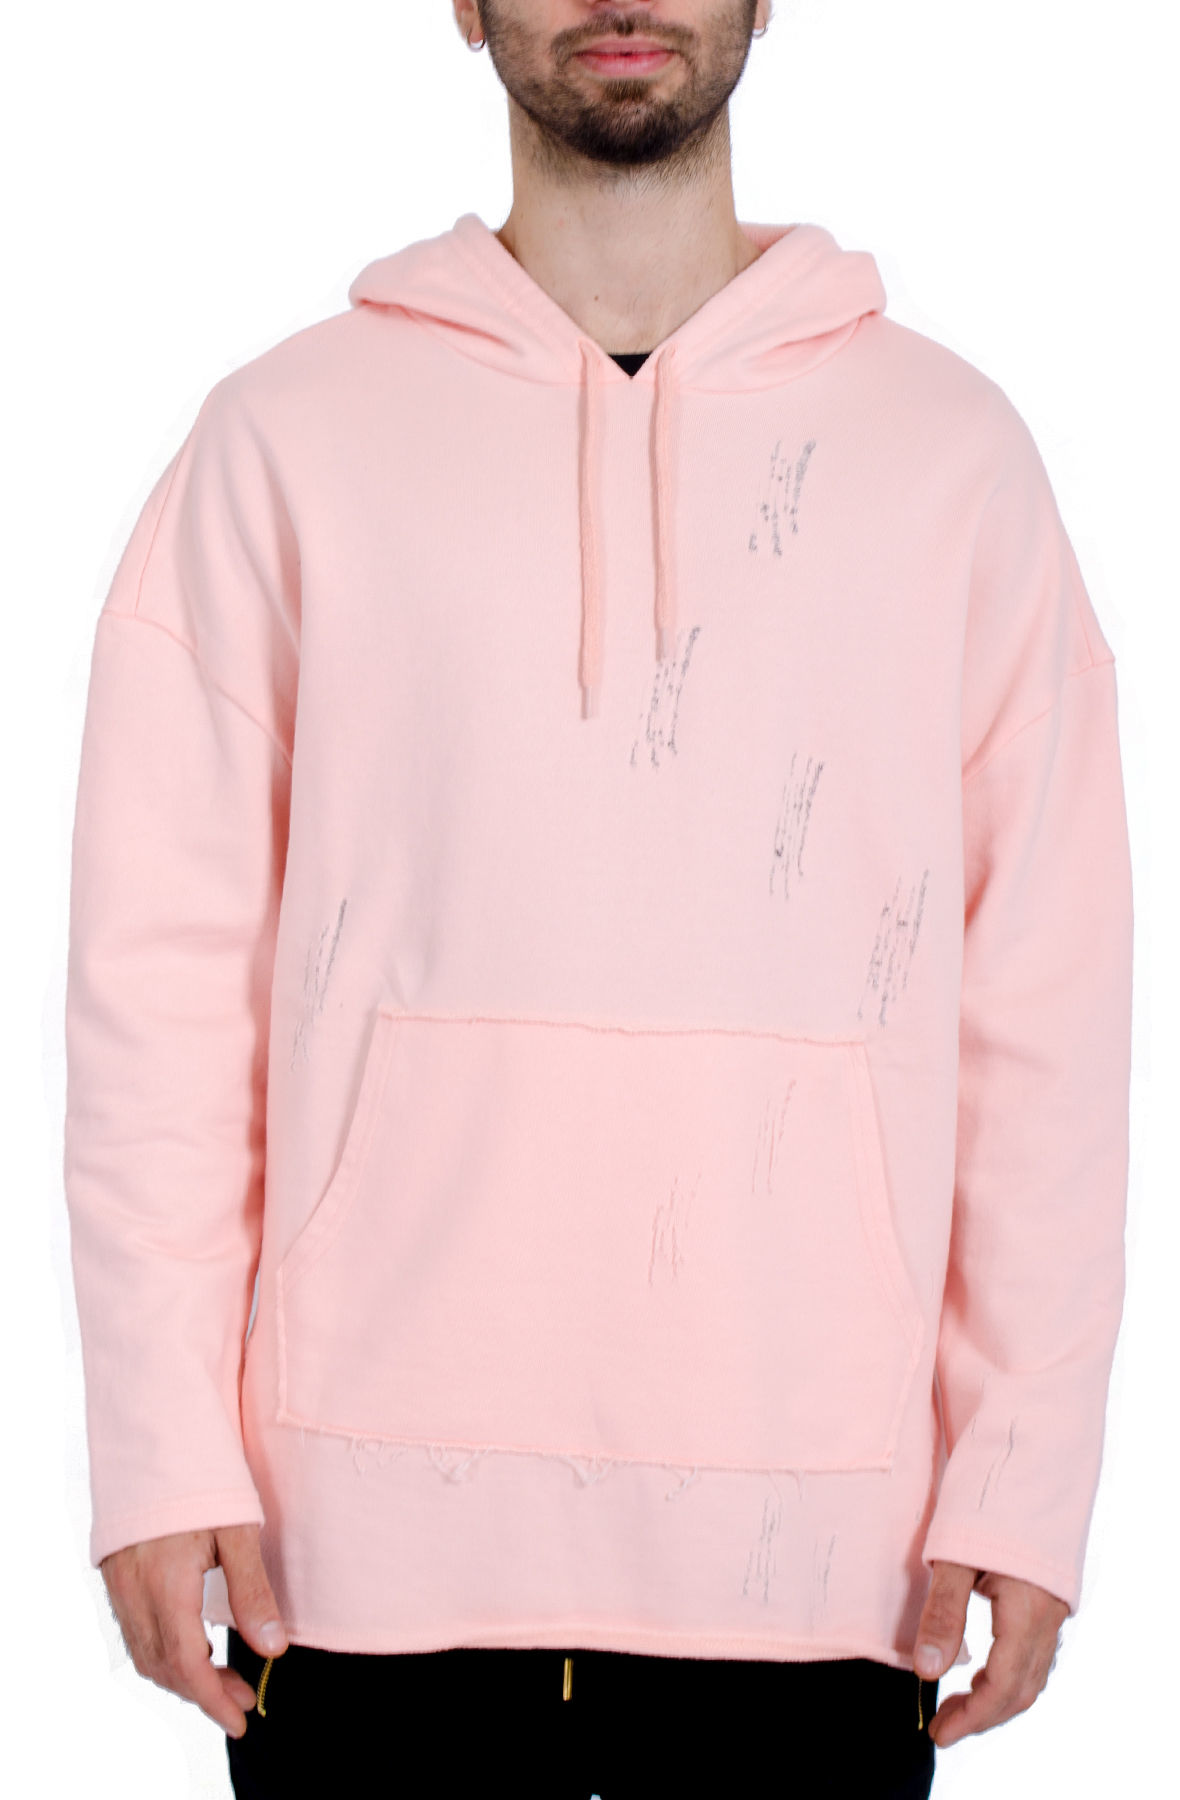 Oversized Distressed Hoodie / Pink